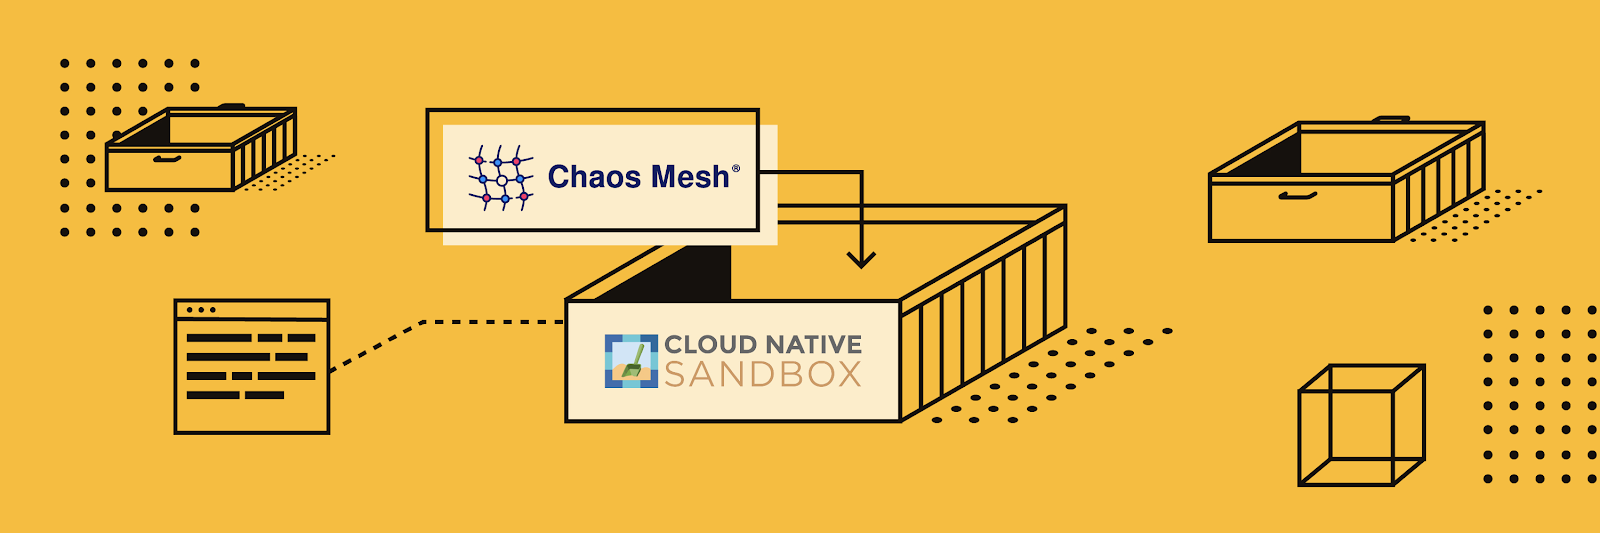 Chaos Mesh Join CNCF as Sandbox Project